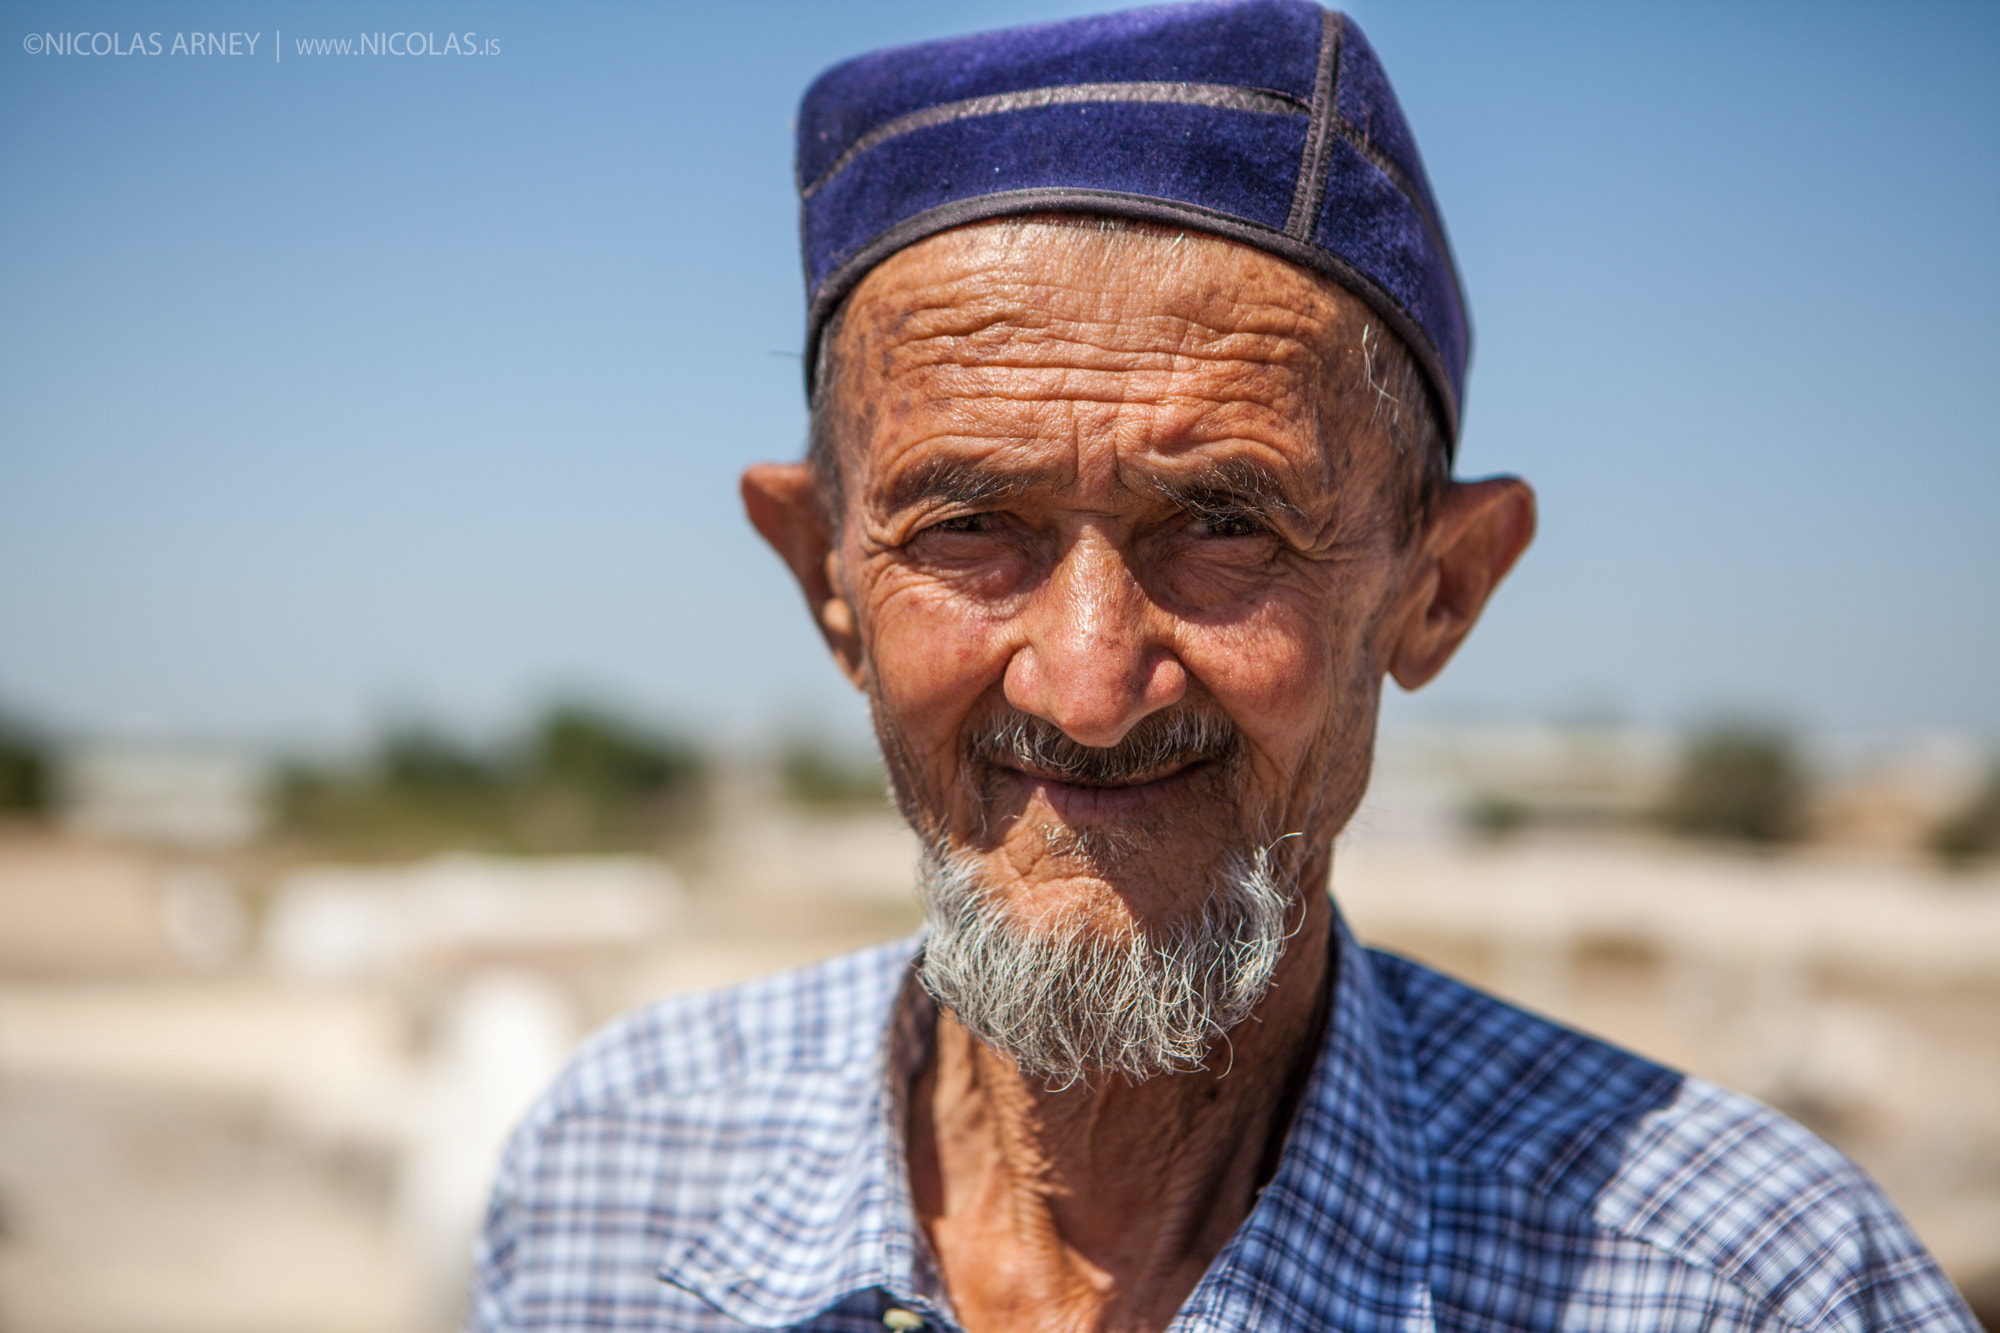 Photograph Old Man Mosque by Nicolas Arney on 500px